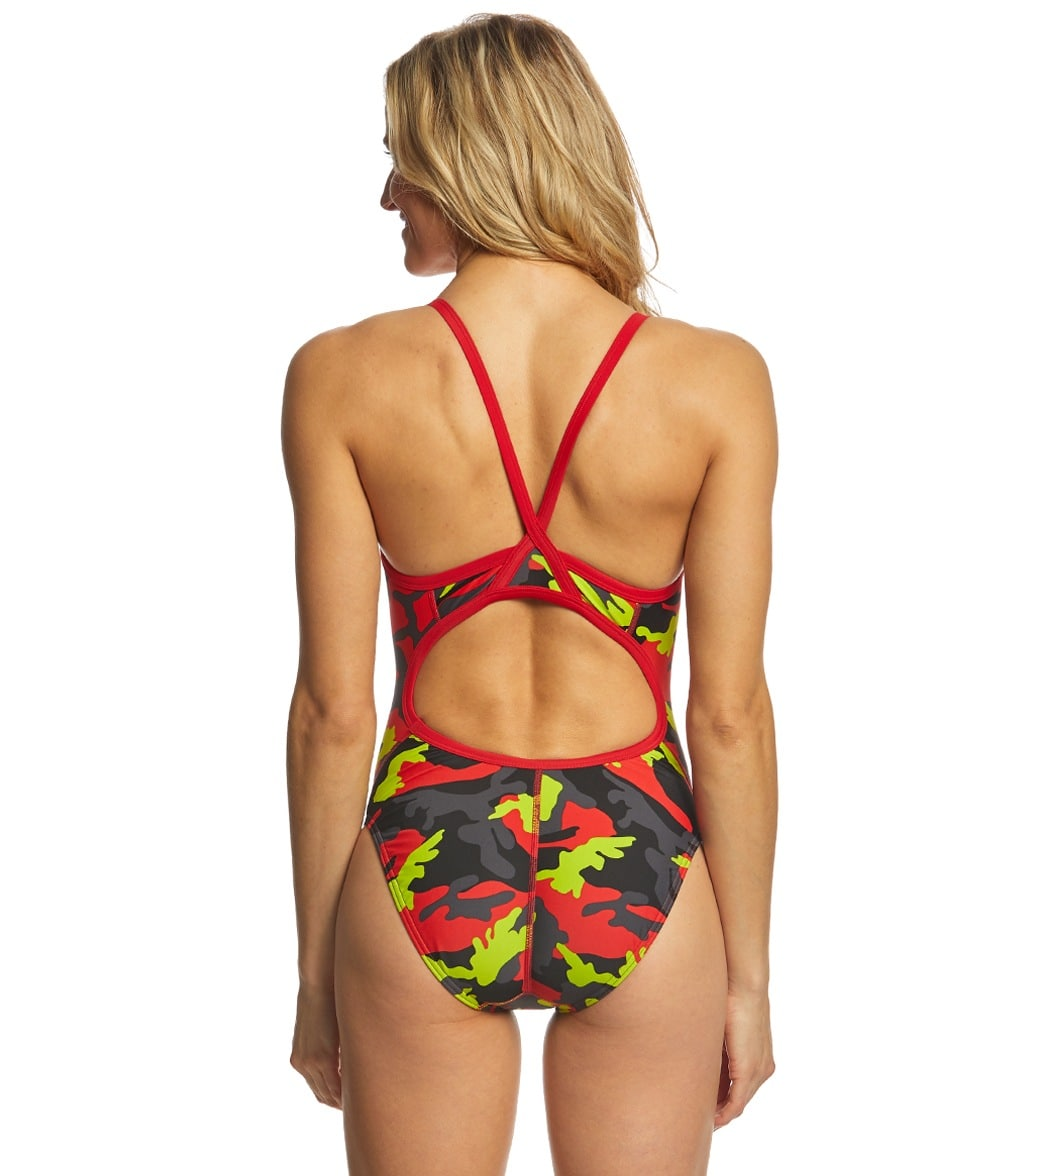 8ecdecb116a15 Speedo Women s Camo Squad Flyback One Piece Swimsuit at SwimOutlet ...